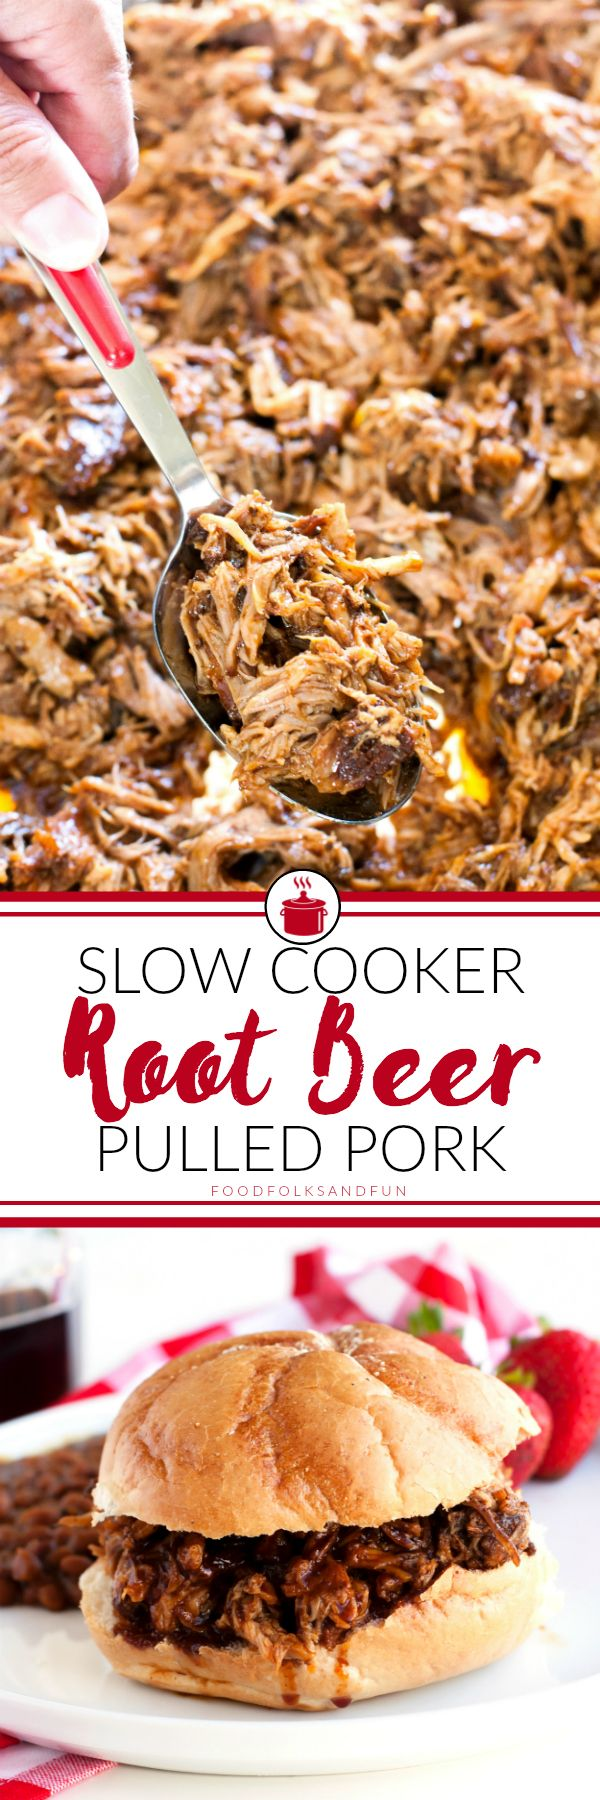 This Slow Cooker Root Beer Pulled Pork recipe is sweet, tangy, and completely delicious. It's perfect for entertaining, and the root beer barbecue sauce alone i